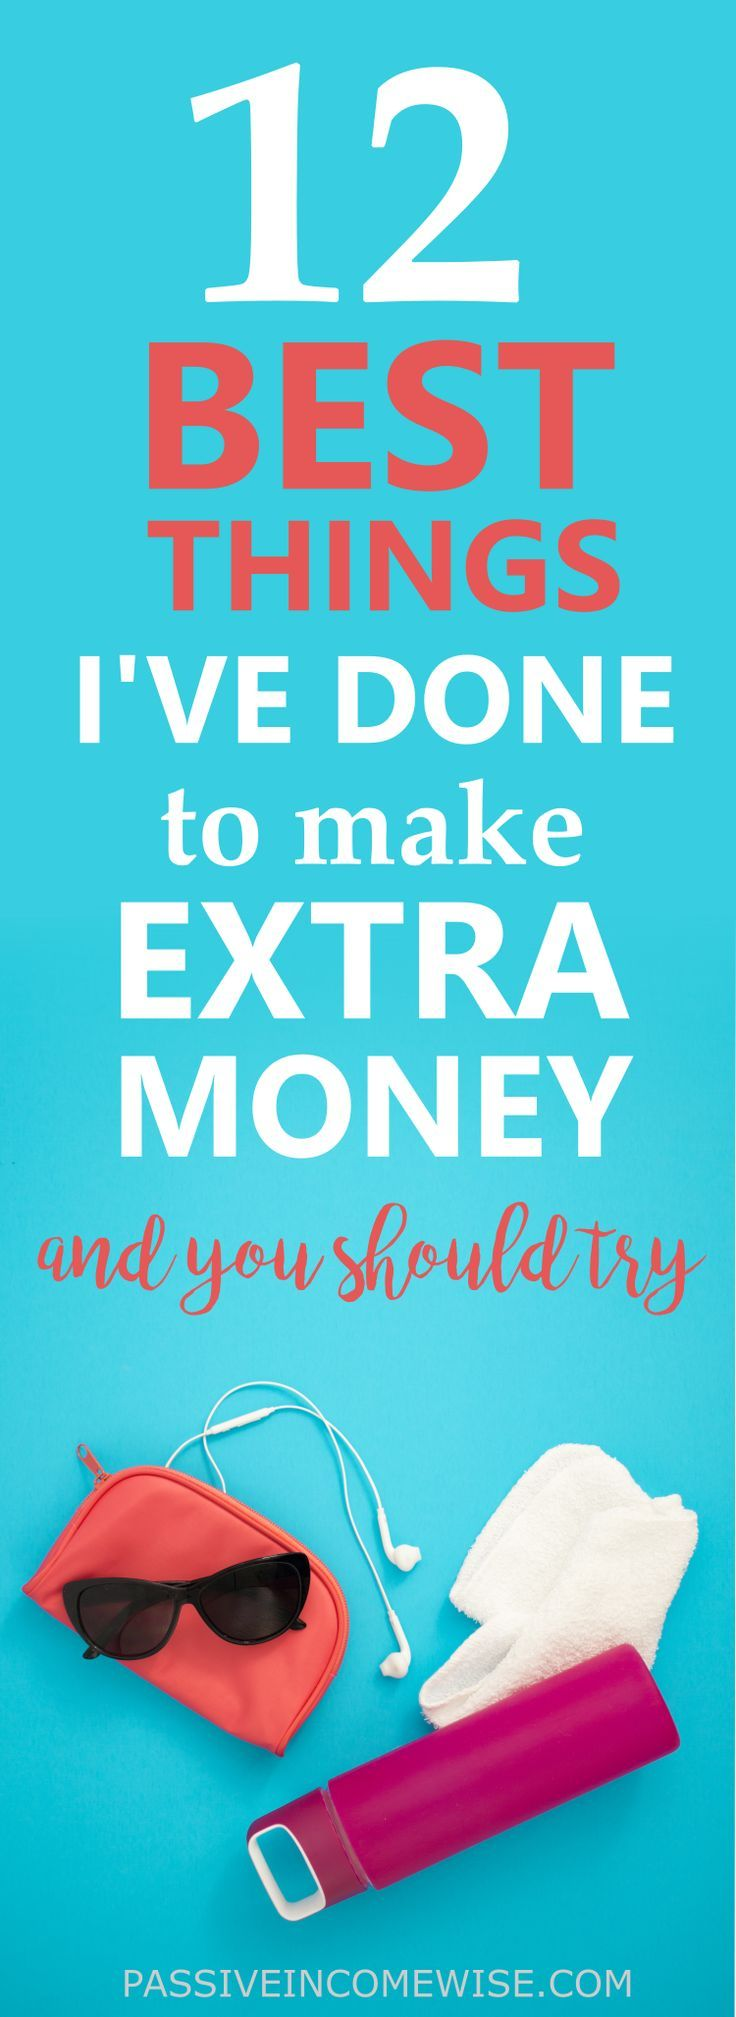 I've done a lot of things over the last years to earn some extra money, and they helped me improve my life. I'm still doing some of the things listed below because I'm saving money to buy my first house which will allow me to have more financial freedom.